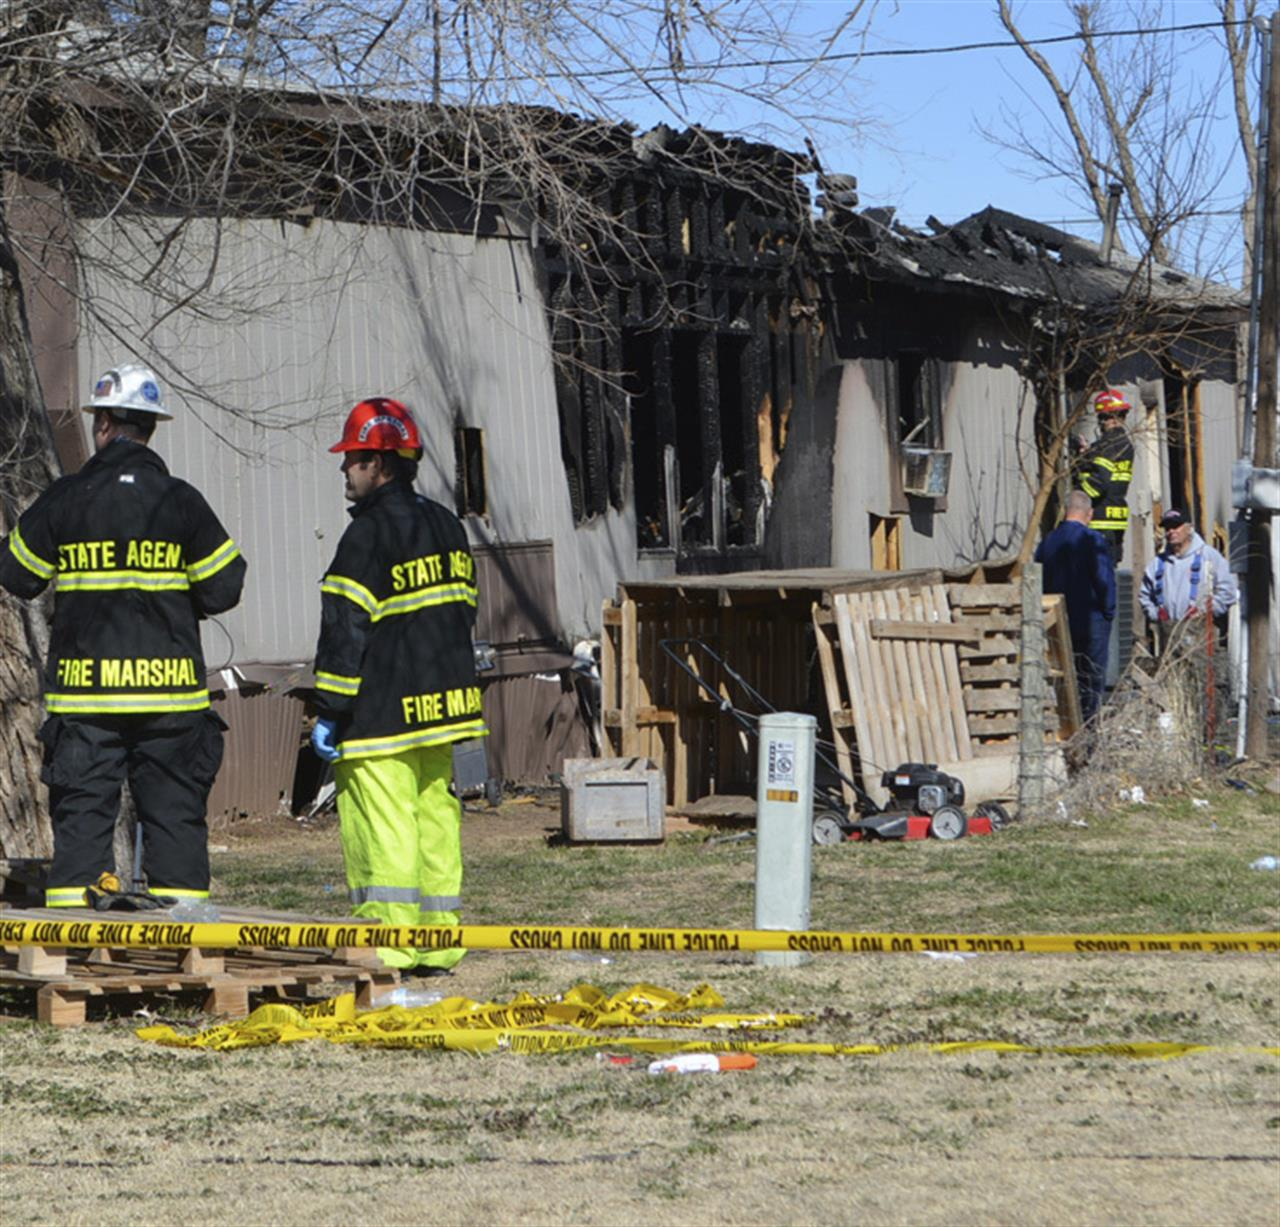 Investigators from the State Fire Marshal's office go over the site of a multi-fatality mobile home fire in Woodward, Okla., Wednesday, March 3, 2021. Officials say six people, including some children, are dead after a fire swept through the home. Fire Chief Todd Finley says one boy escaped the blaze early Thursday morning after a firefighter and a bystander were able to free him from a window. (Dawnita Fogleman/The Woodward News via AP)